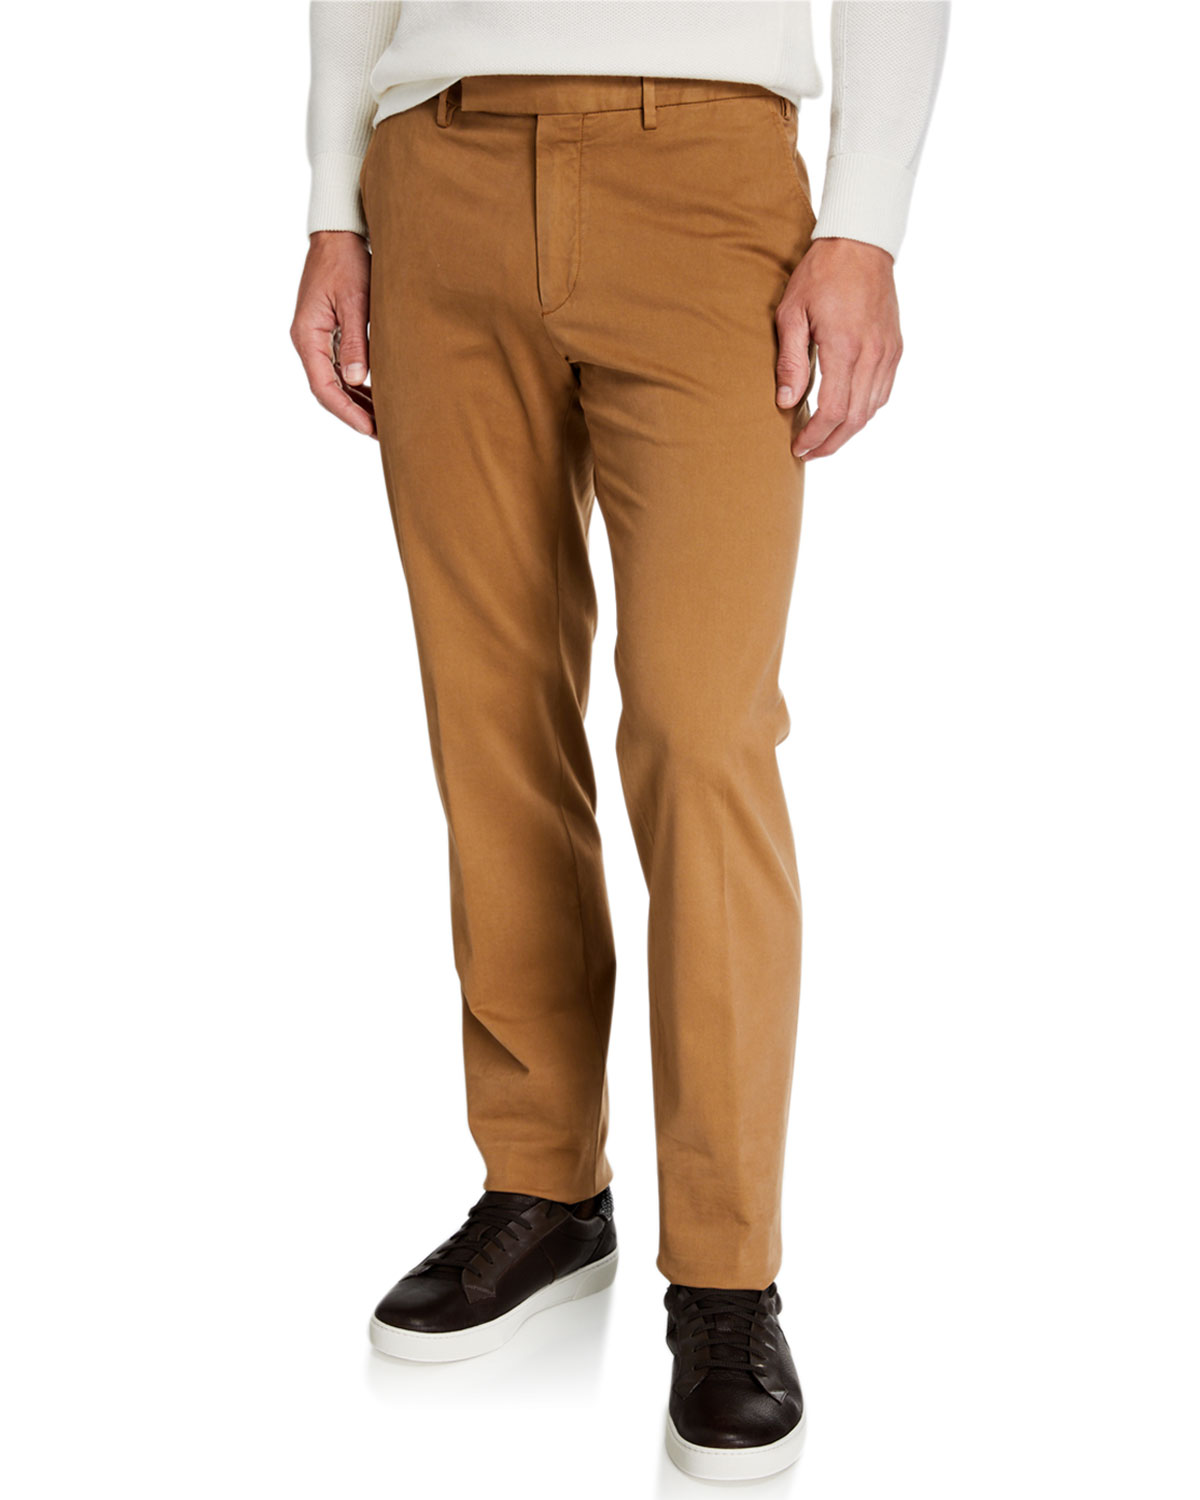 Men's Garment Dyed Tab Twill Pants by Ermenegildo Zegna